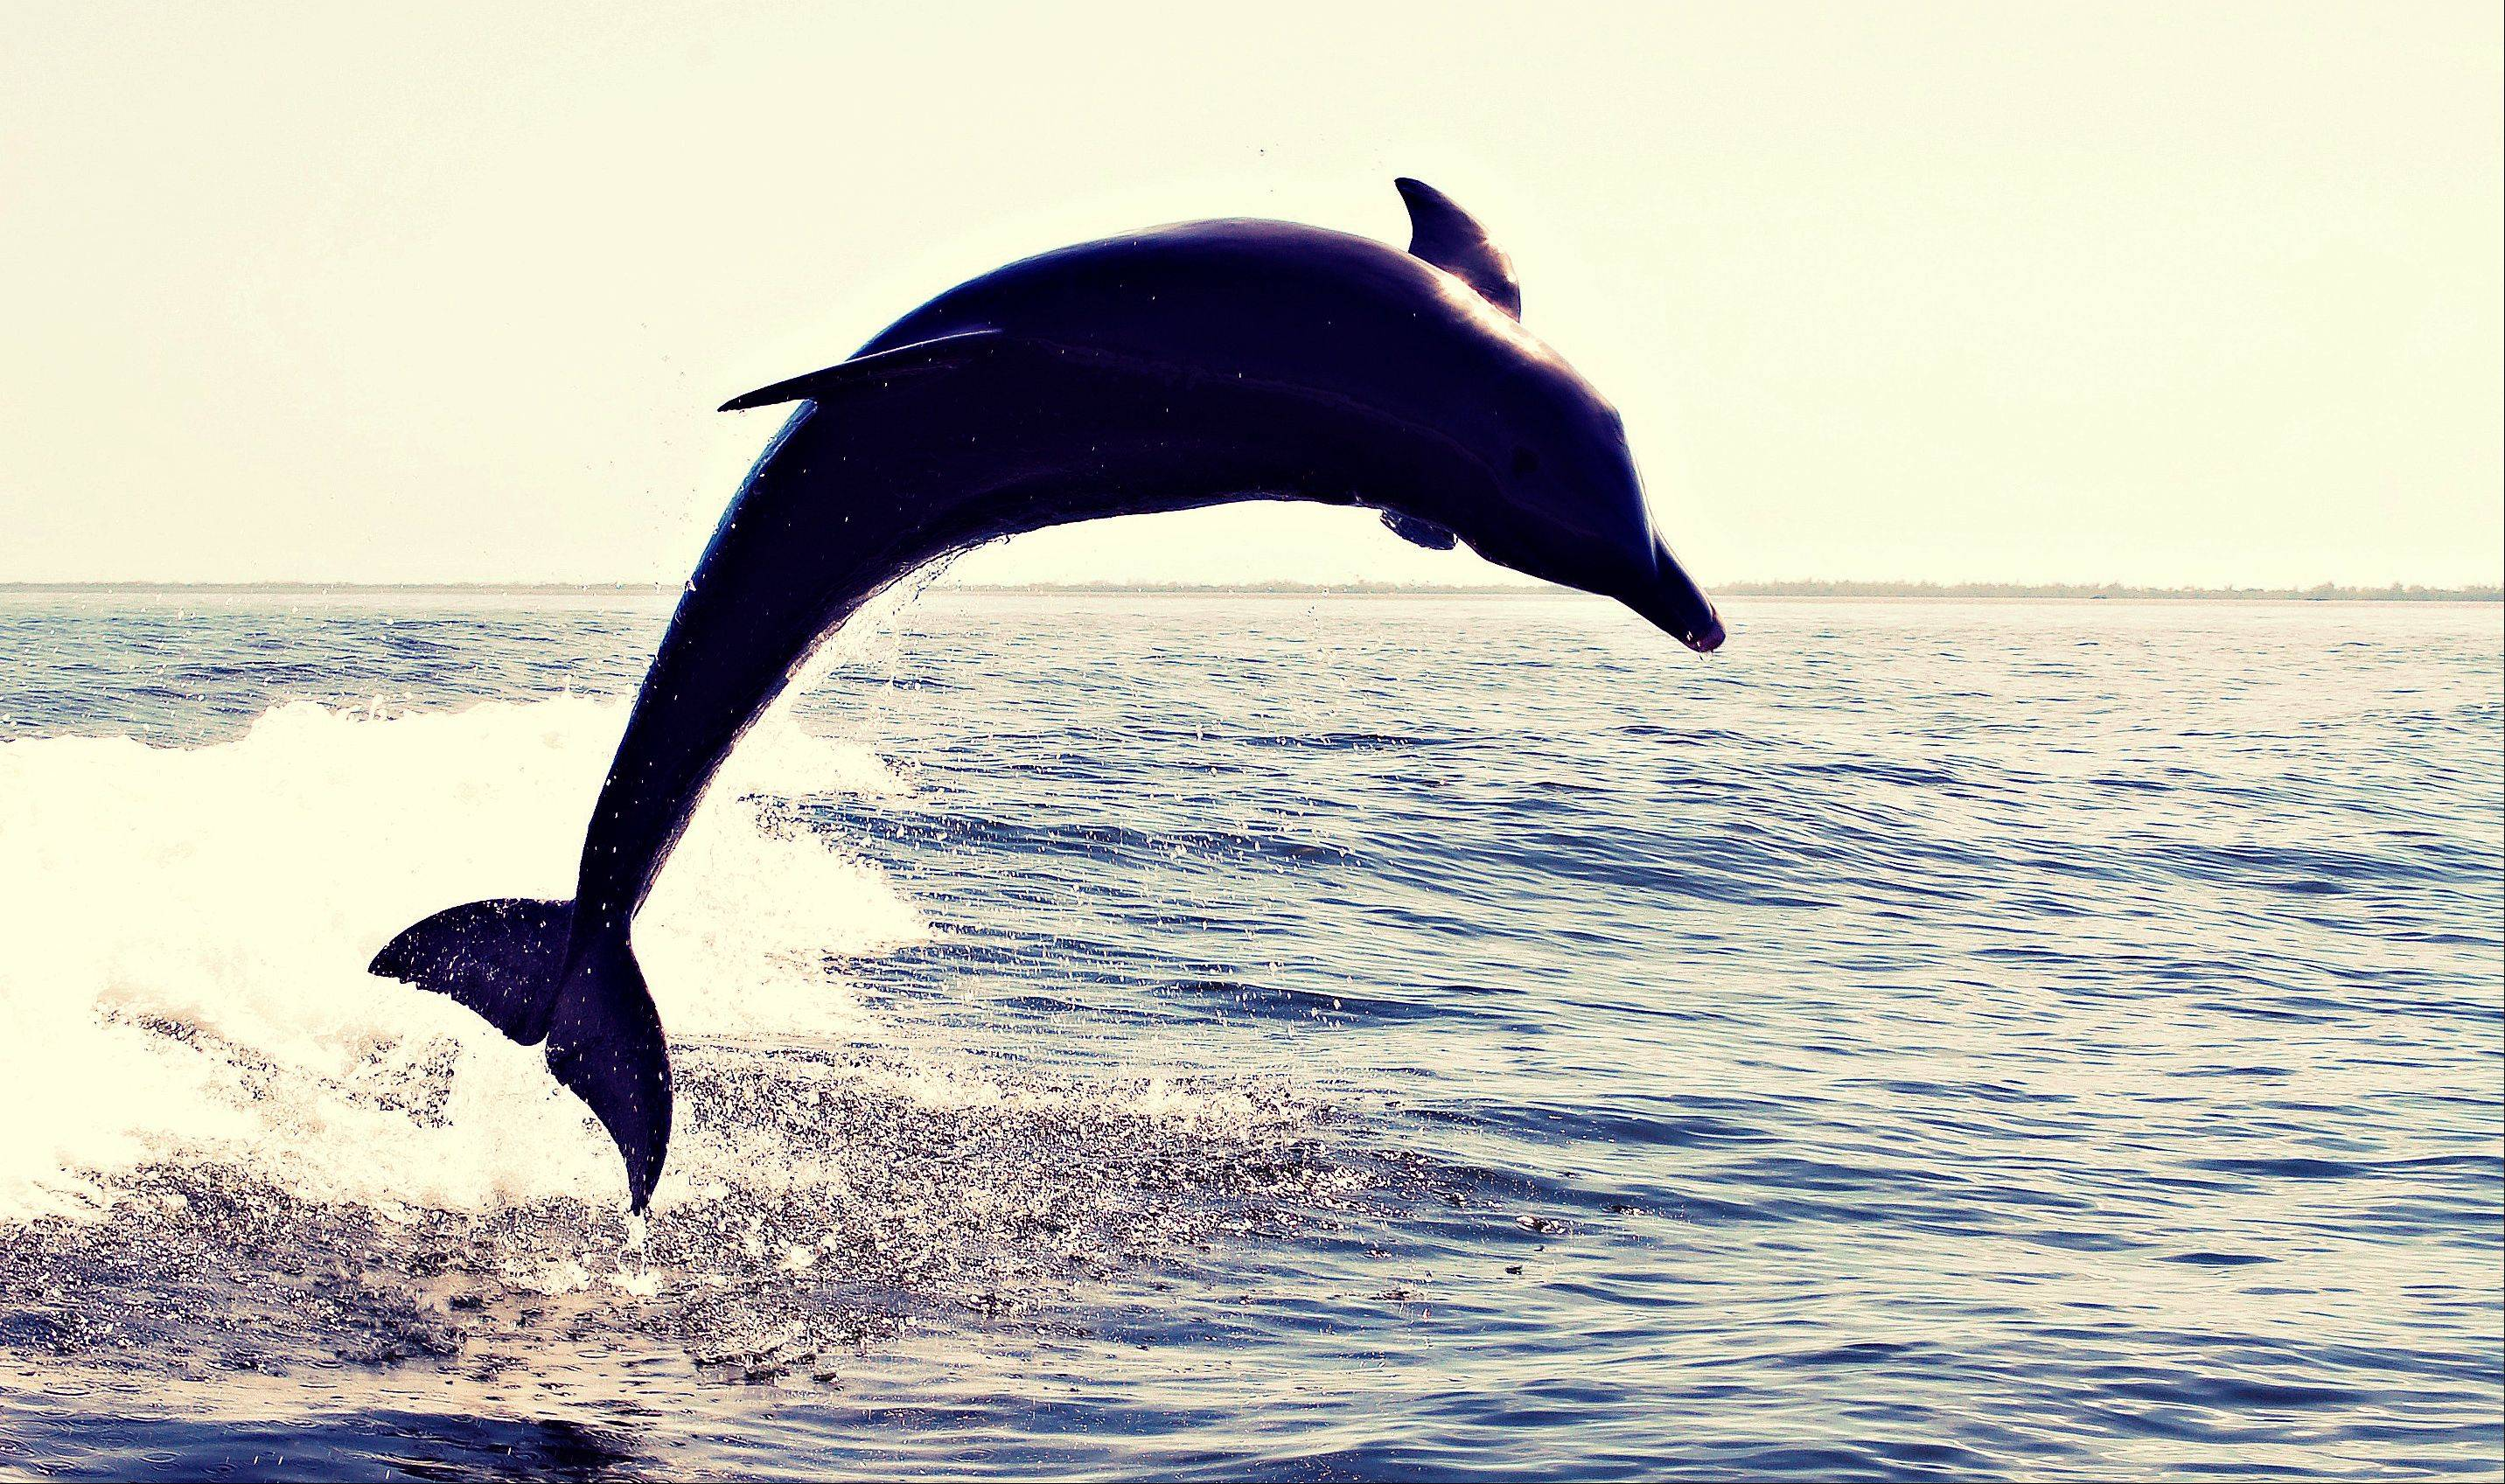 A dolphin in Sanibel, FL being playful for the camera.